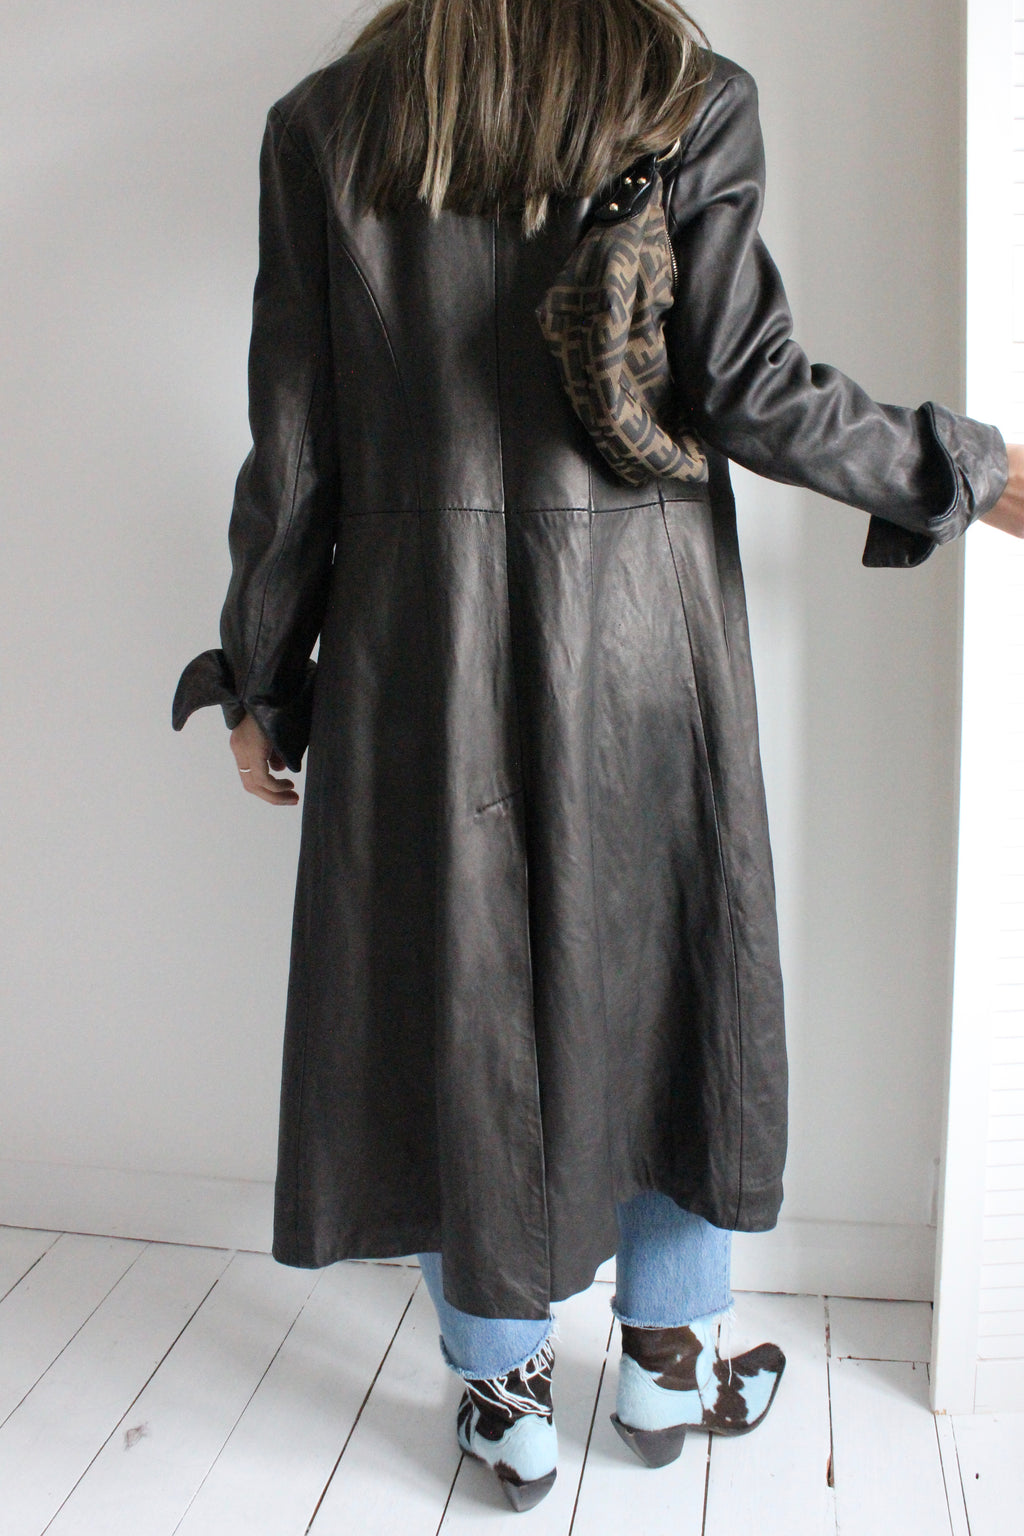 Vintage Y2k 90s Long Black/Brown Leather Goth Rave Trench Jacket